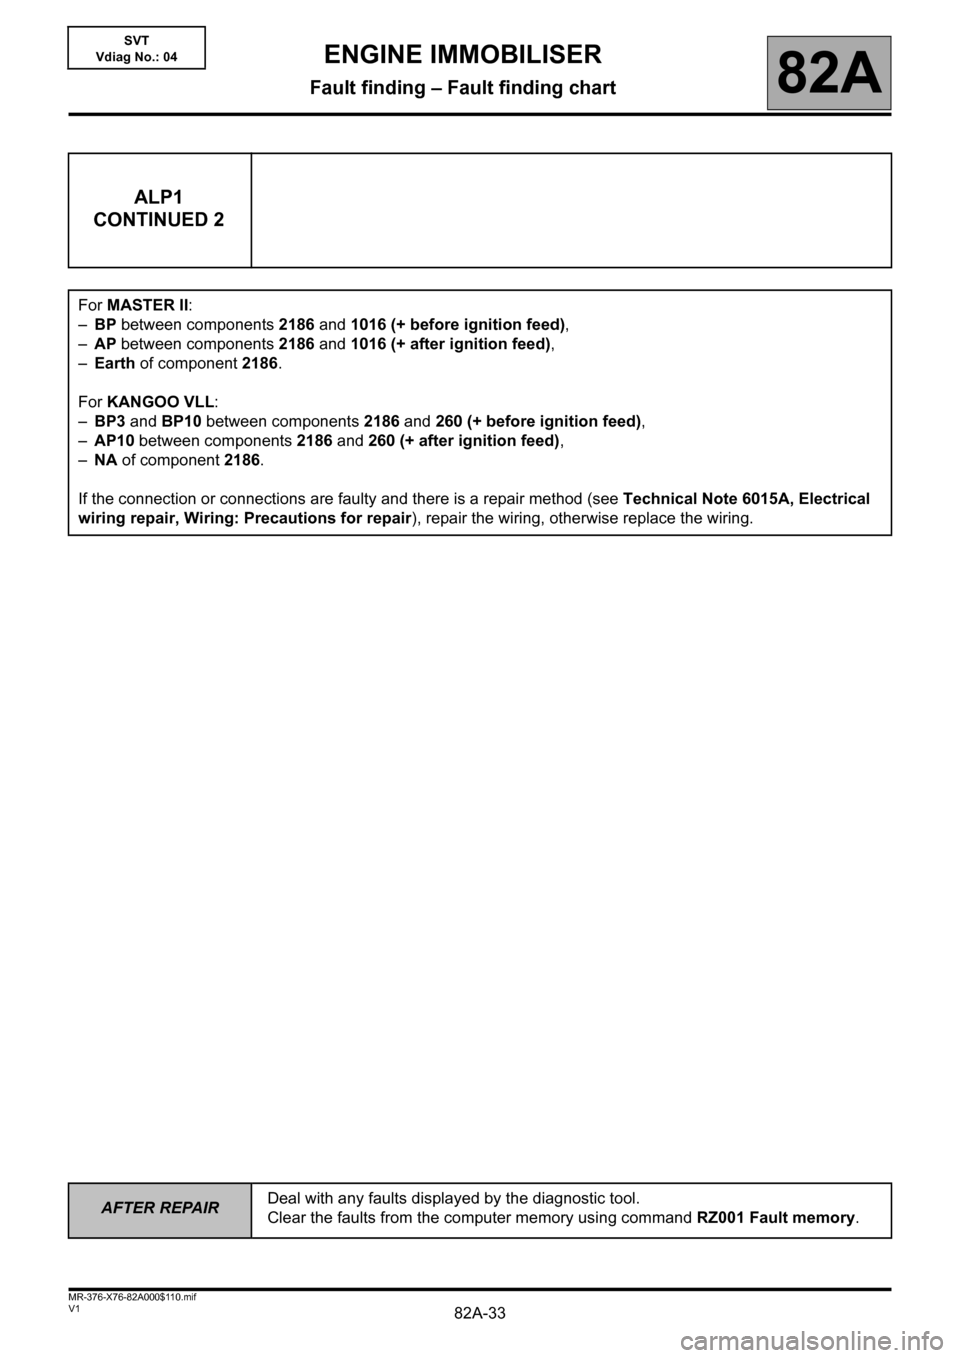 RENAULT KANGOO 2013 X61 / 2.G Engine Immobiliser Workshop Manual, Page 33